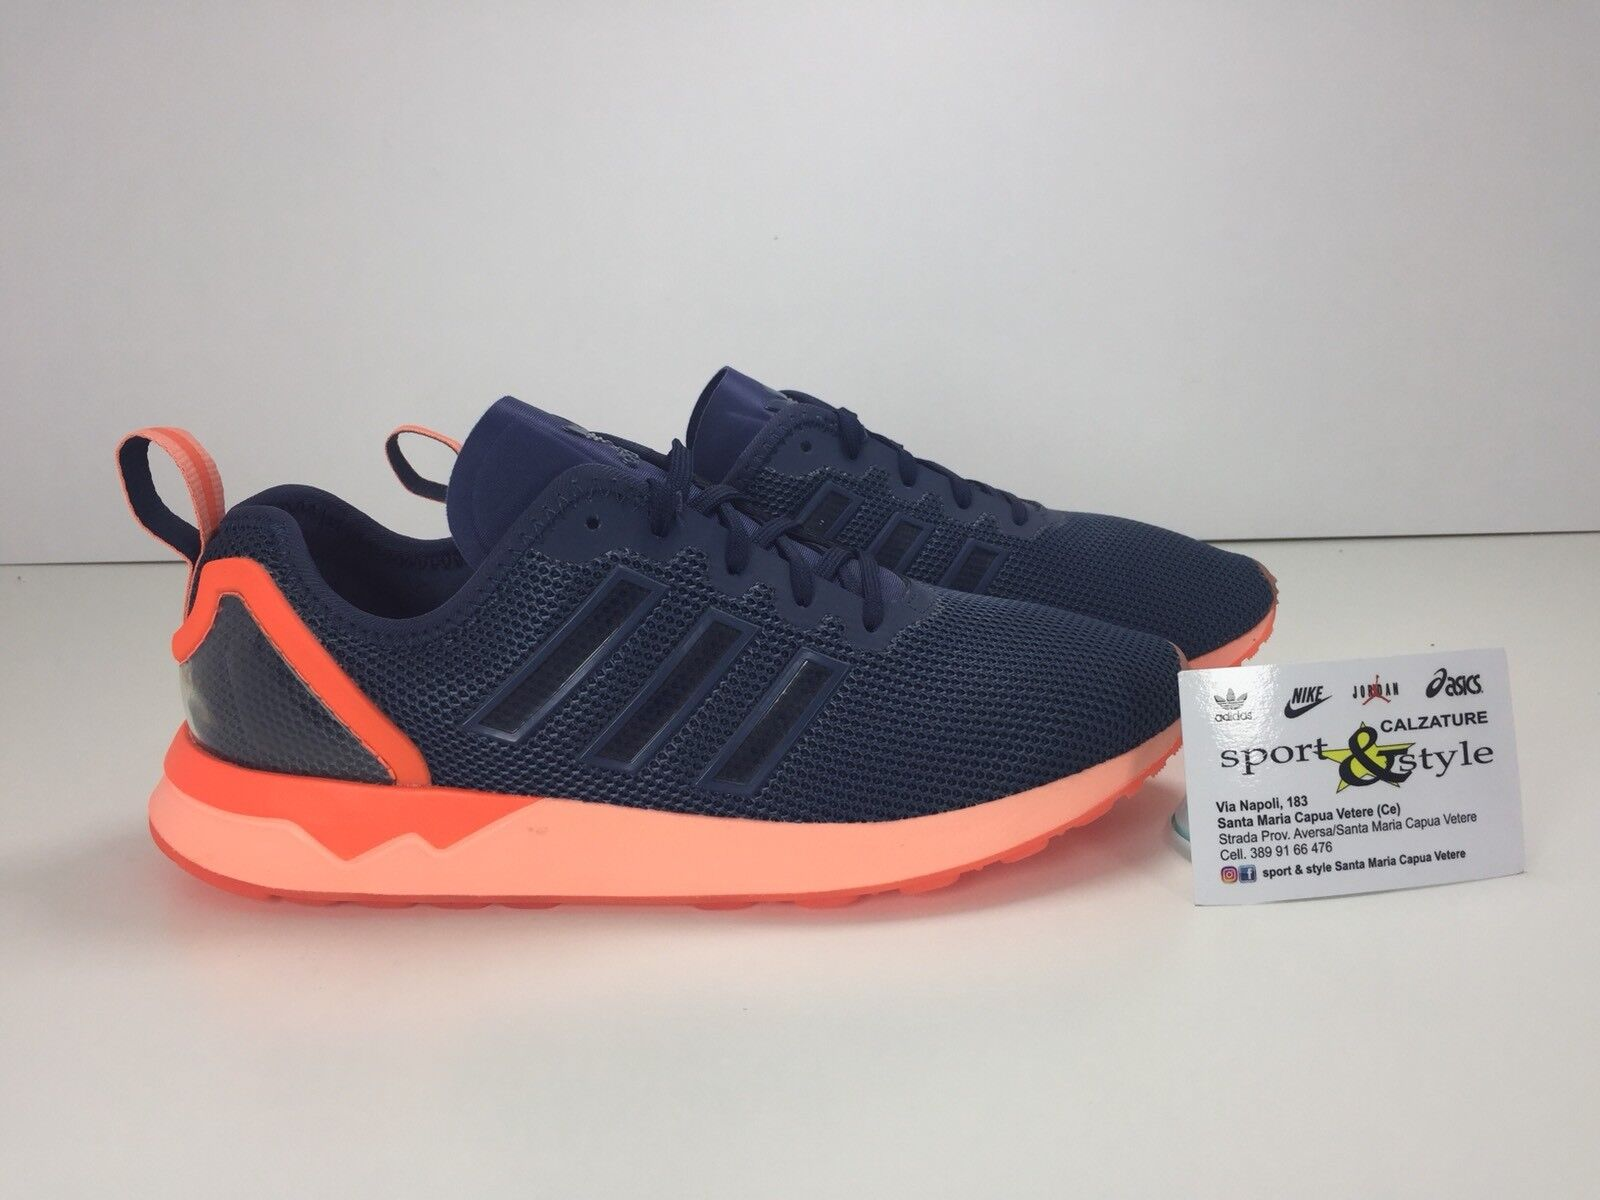 SCARPE ADIDAS ZX FLUX ADV K N. 40 /2  SNEAKERS  BASSE   S79013 The latest discount shoes for men and women